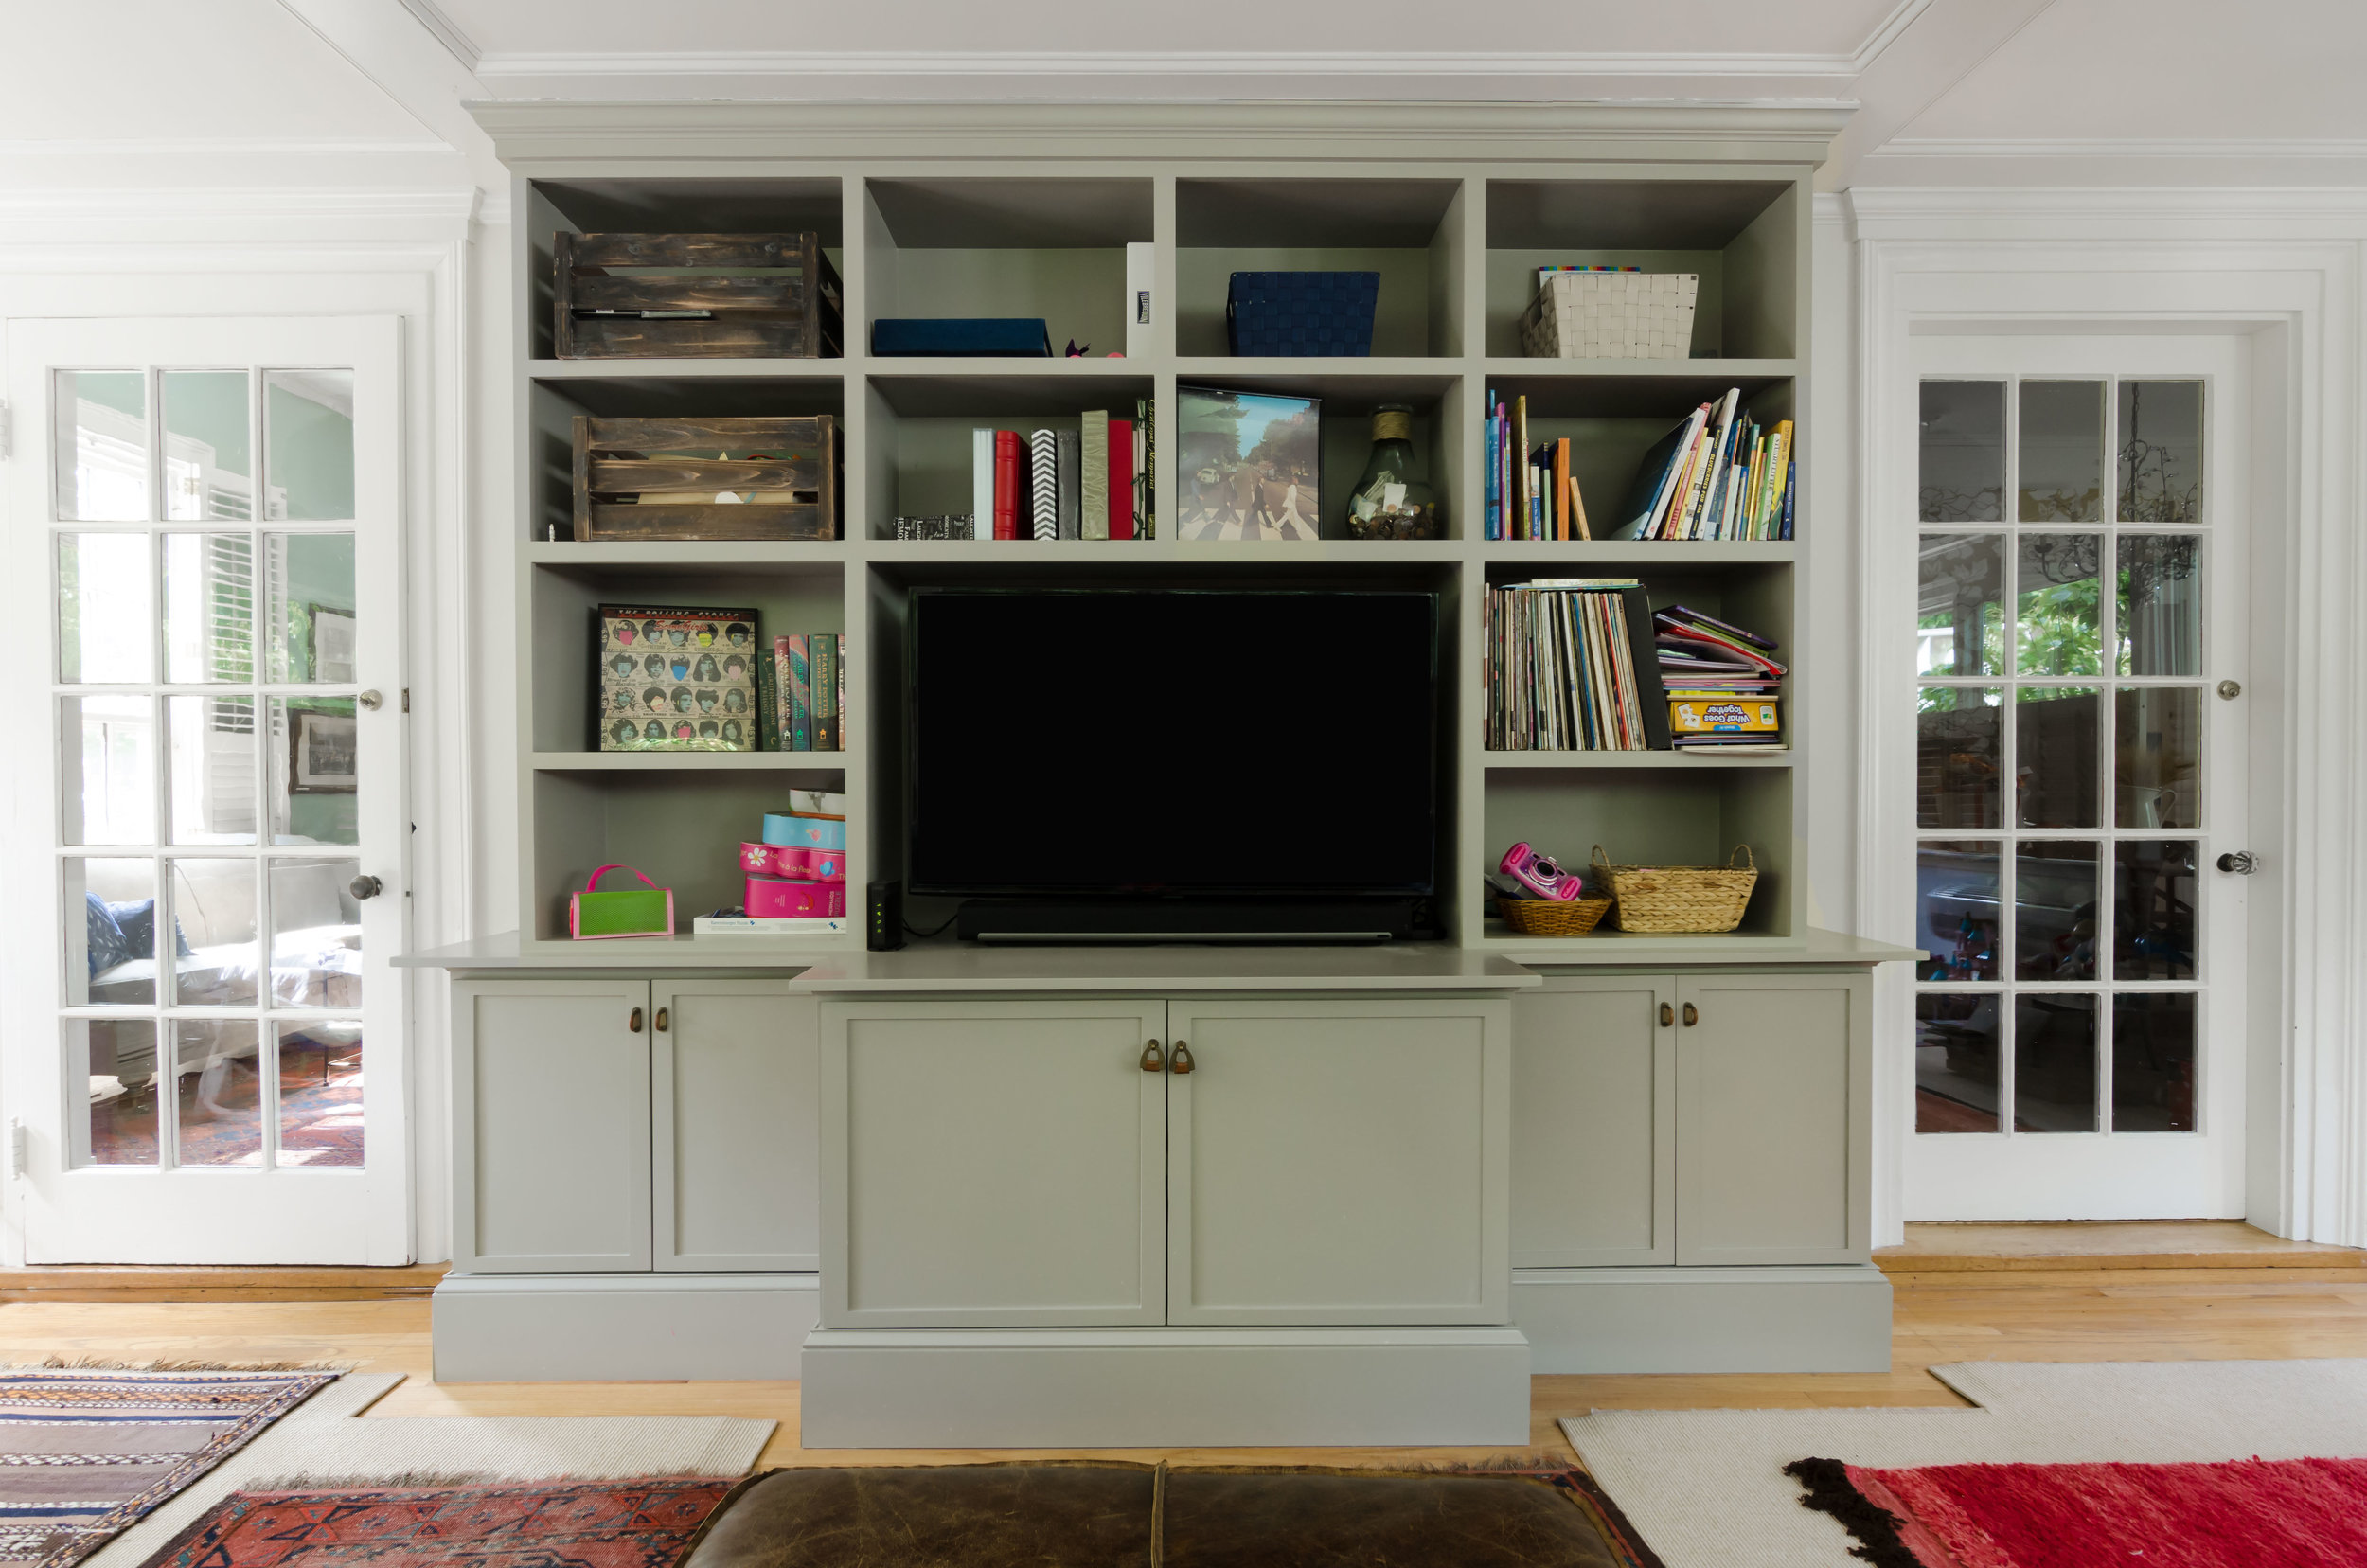 Built-in media center